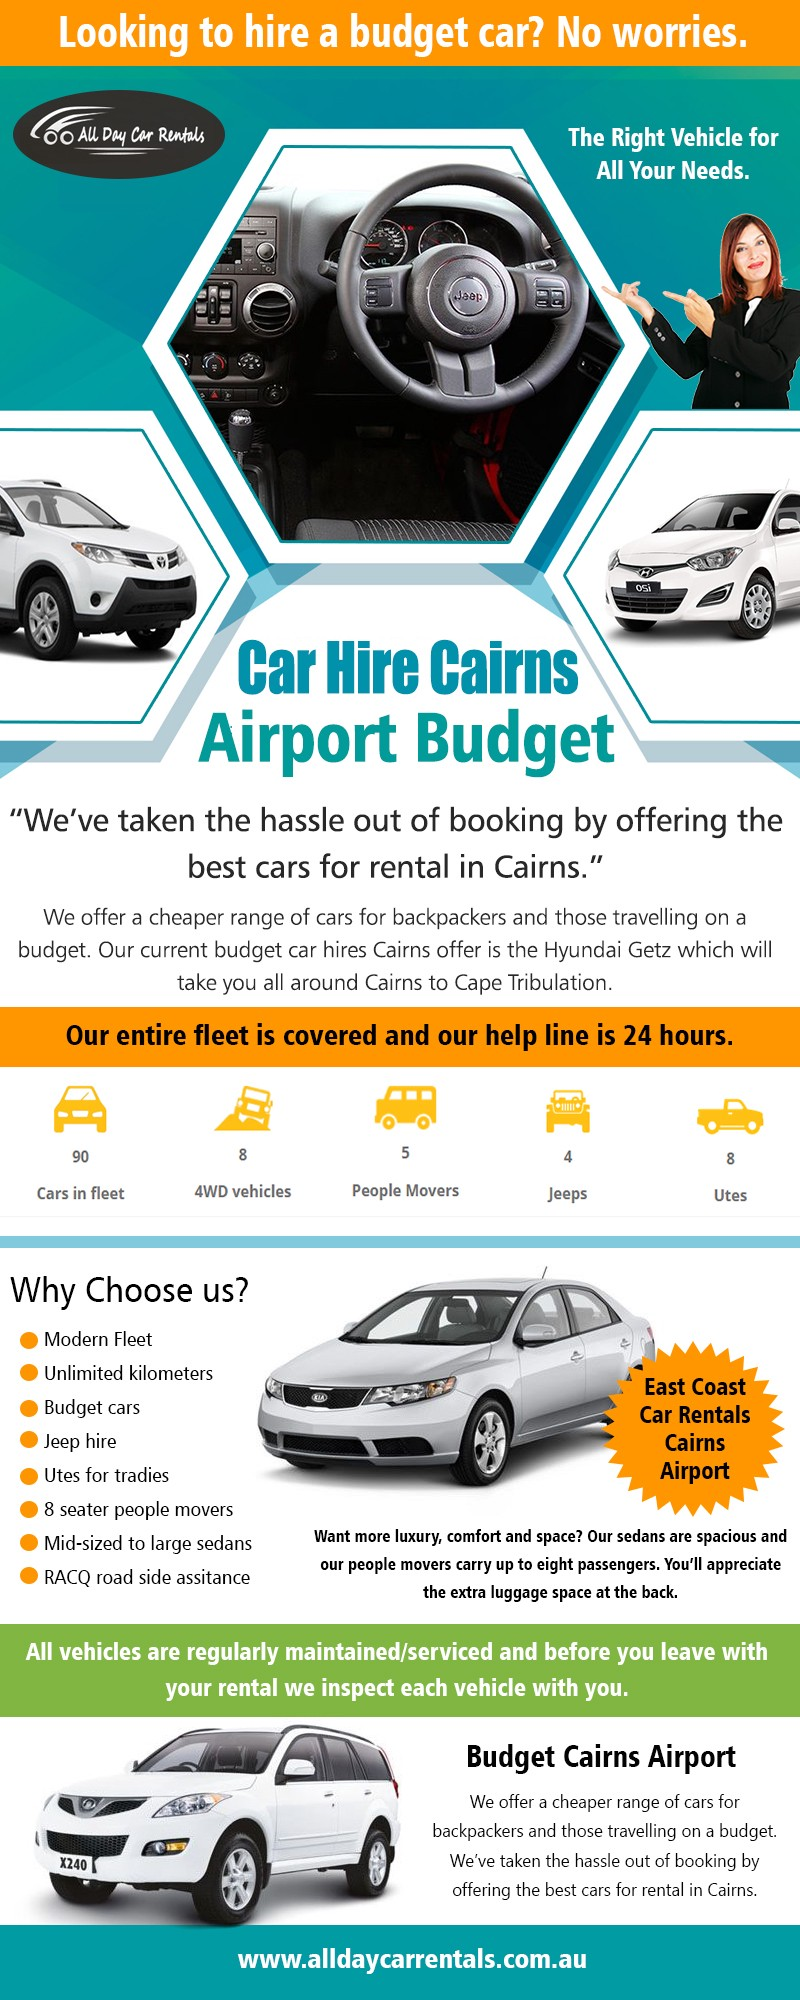 Car Hire Cairns To Townsville All Day Car Rentals Medium